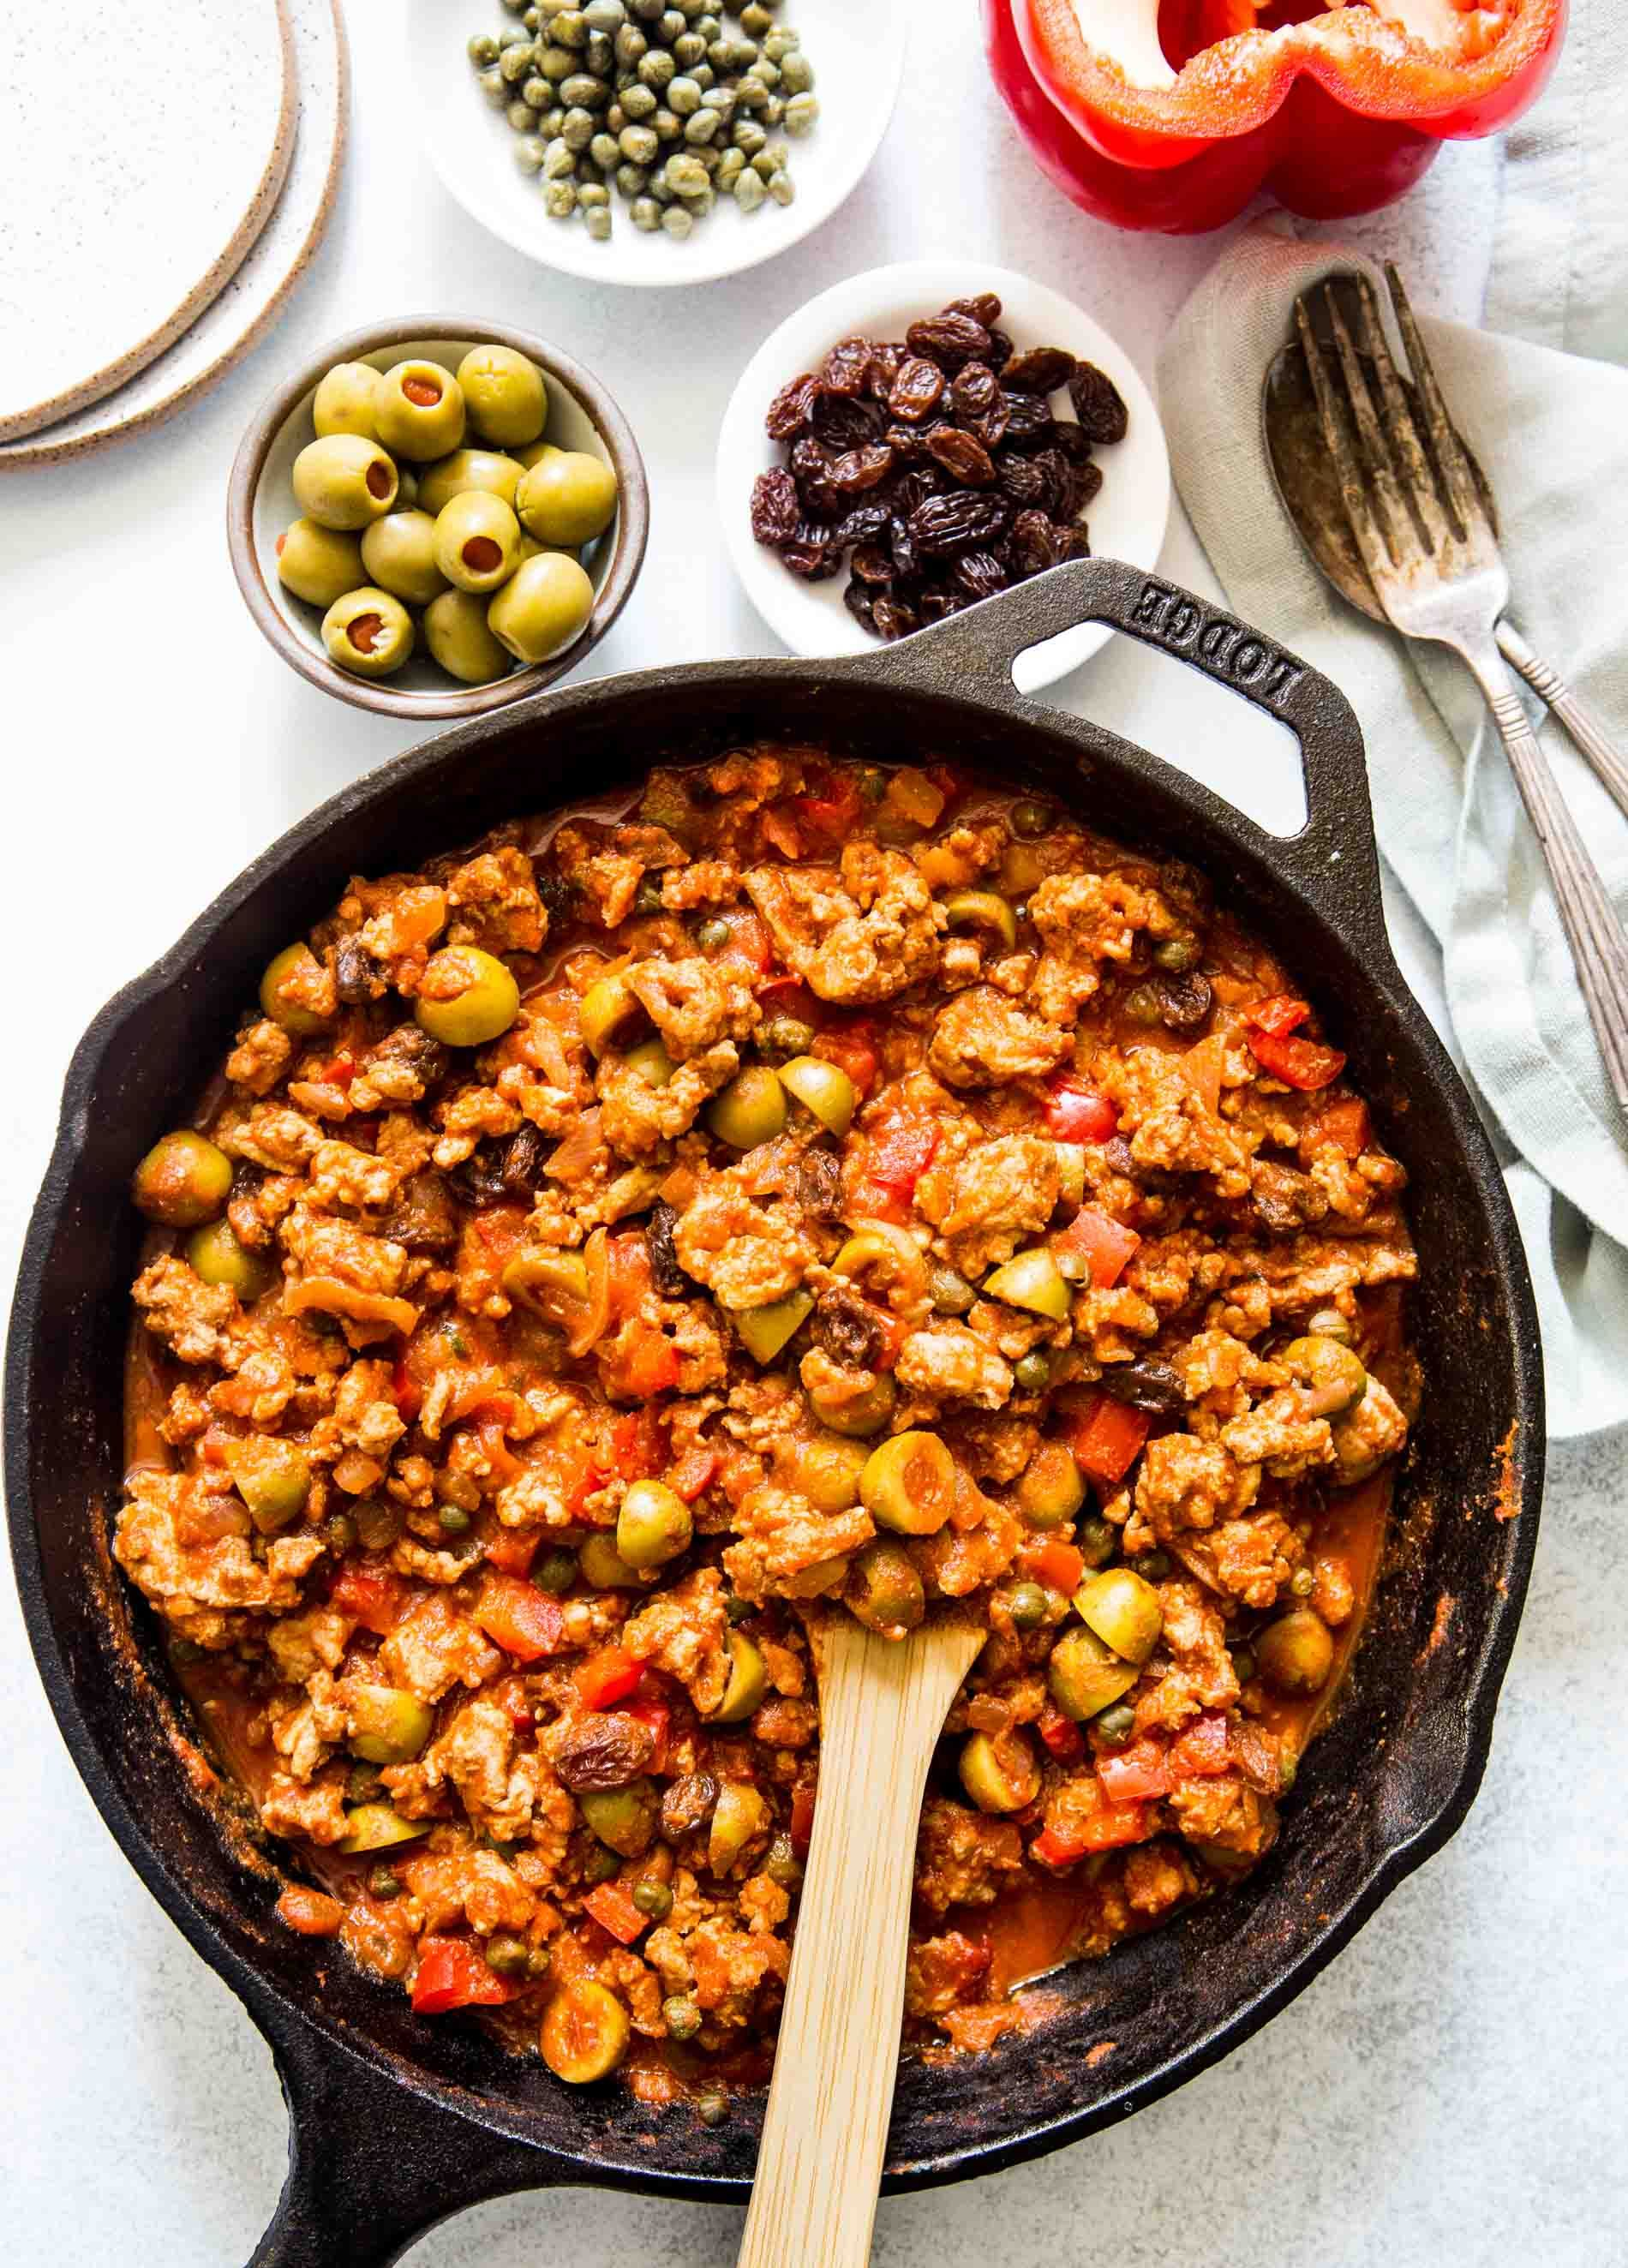 Turkey Picadillo (Table for Two) Picadillo recipe